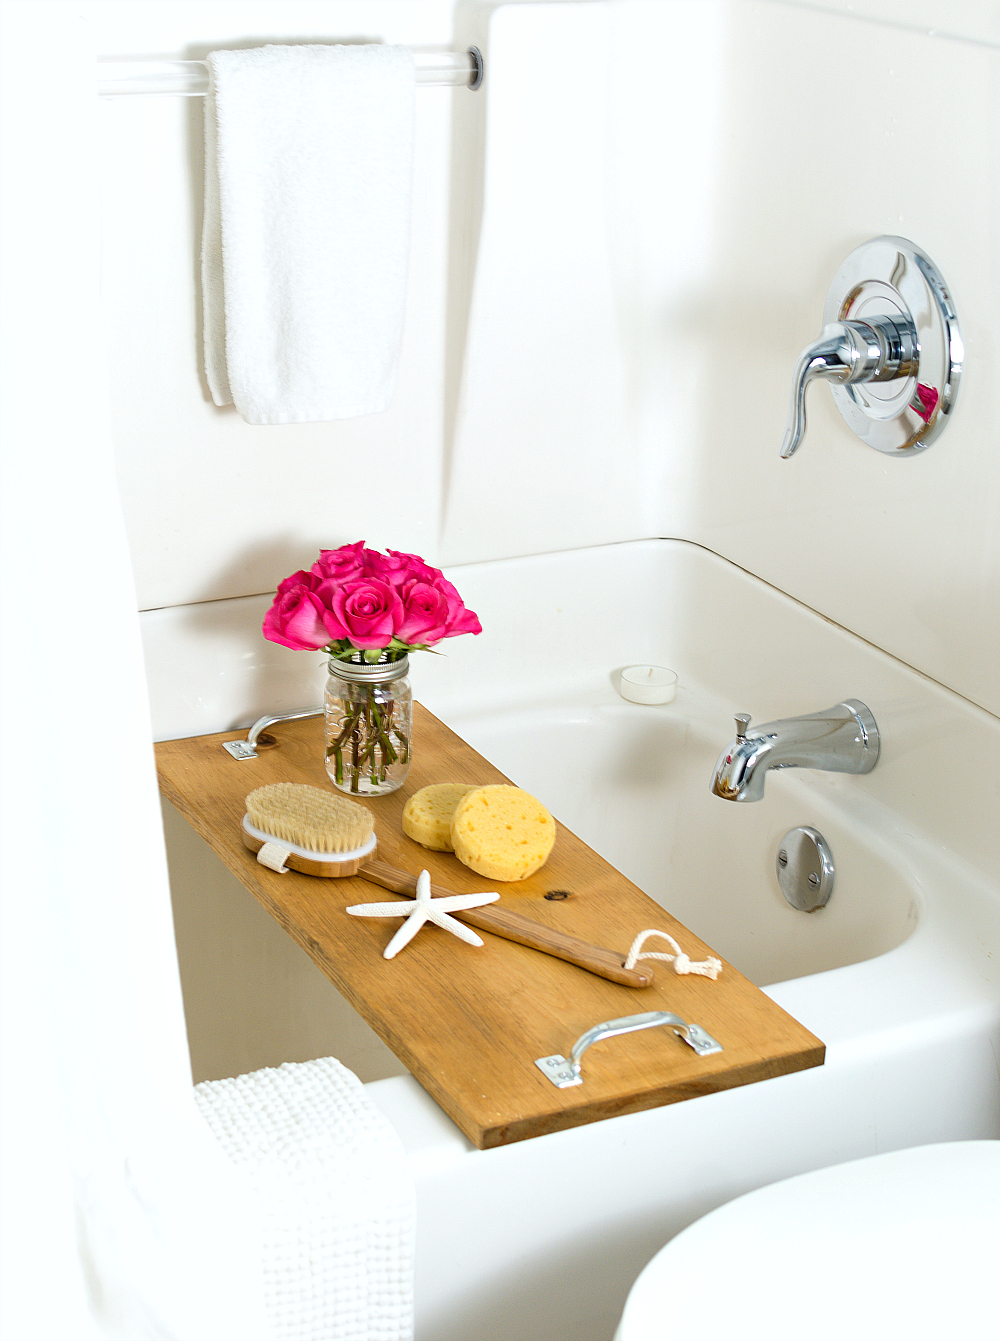 bath-caddy-diy-wood (2 of 12)